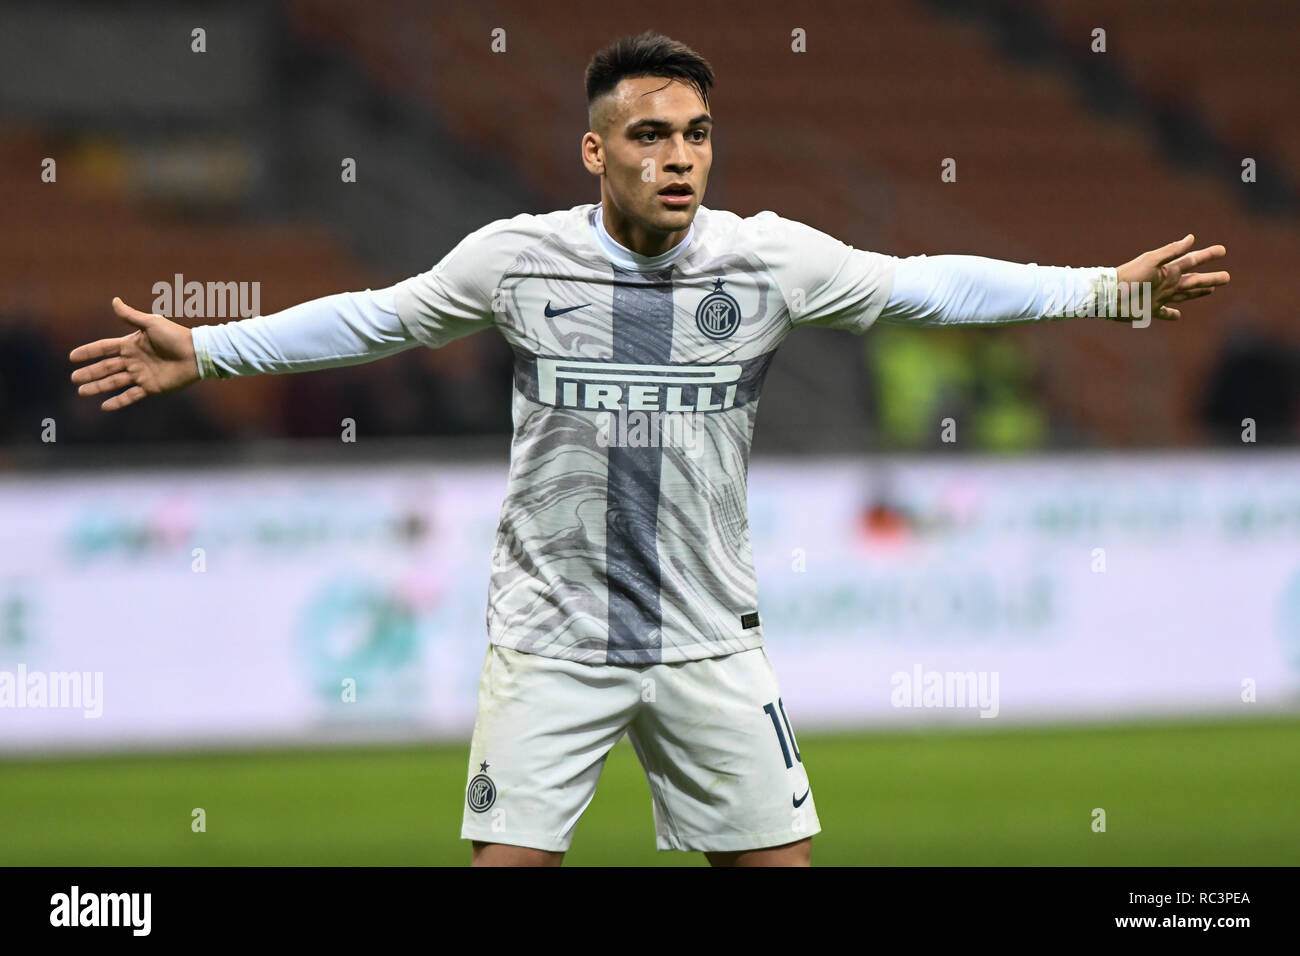 Milan, Italy. 13th Jan 2019. Forward Lautaro Martínez (Inter) gestures during the Italian Cup 'Coppa Italia' football match, Inter Milan vs Benevento Calcio at San Siro Meazza Stadium in Milan, Italy on 13 January 2019. The football match is played behind closed doors after Napoli's Senegalese player Kalidou Koulibaly was subject to racist chants by FC Internazionale's 'ultra' fans during the Boxing Day match. Credit: Piero Cruciatti/Alamy Live News Stock Photo